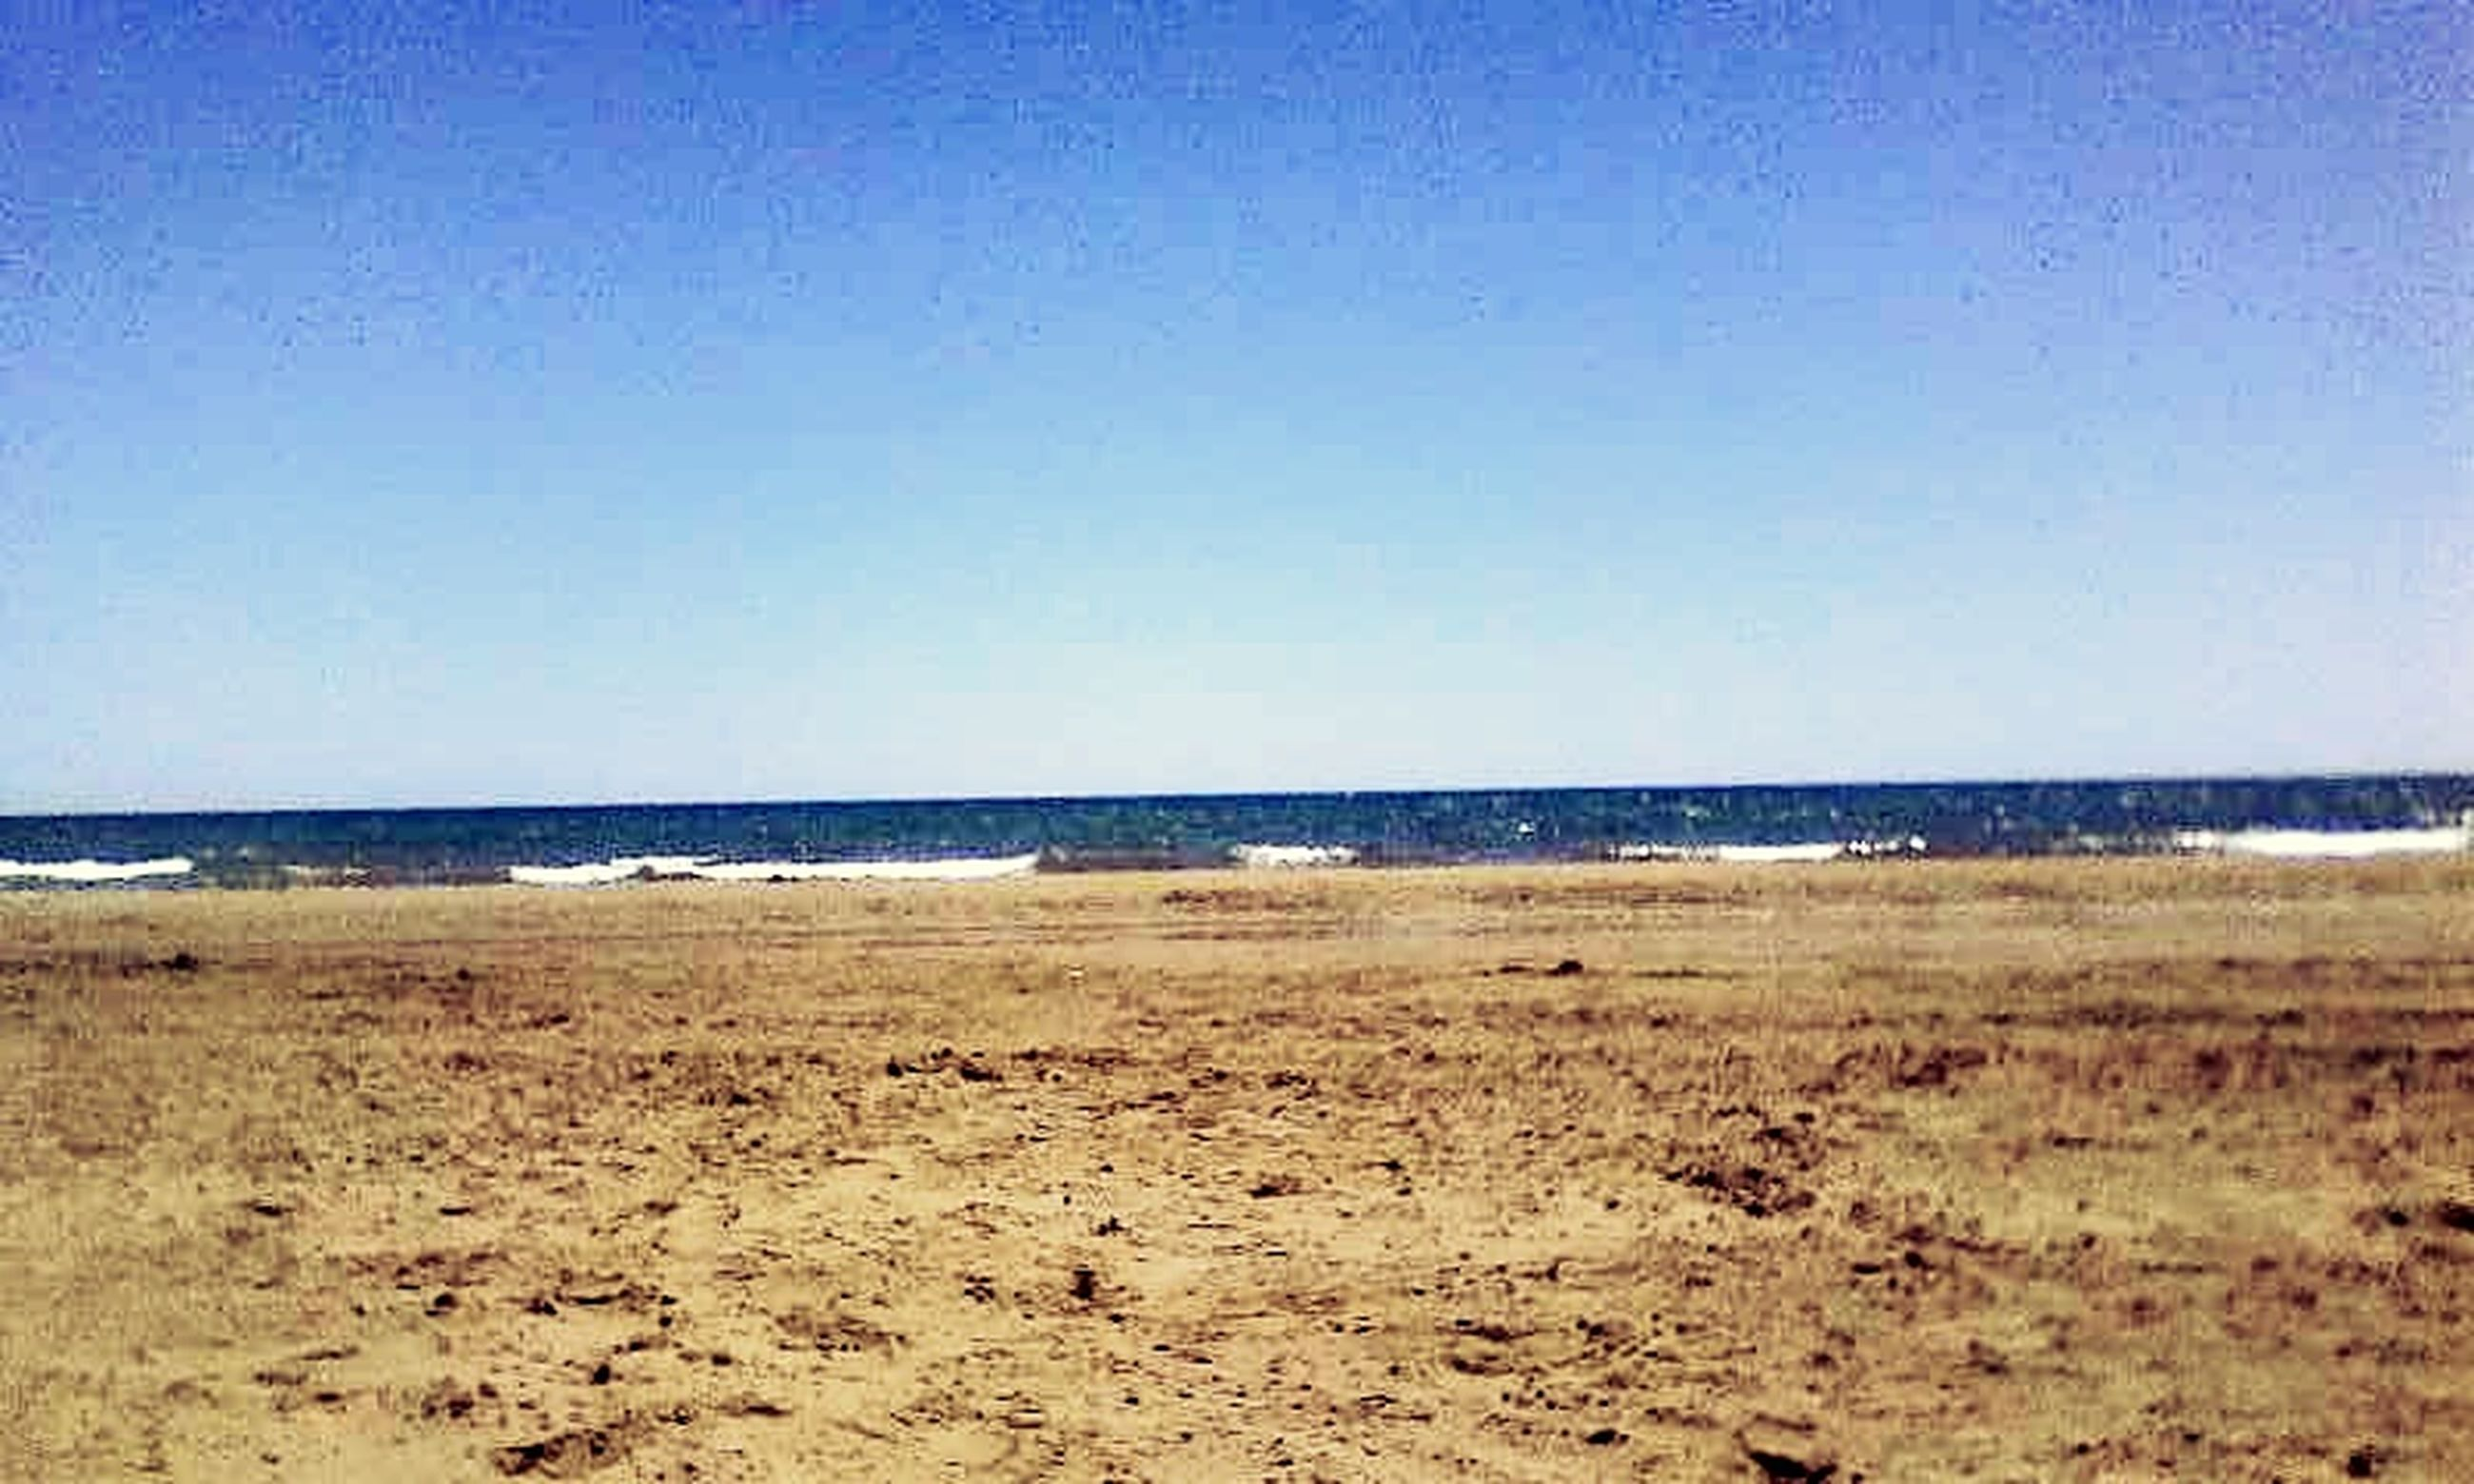 beach, clear sky, sea, horizon over water, copy space, sand, shore, tranquil scene, tranquility, water, blue, scenics, beauty in nature, nature, idyllic, remote, day, coastline, outdoors, calm